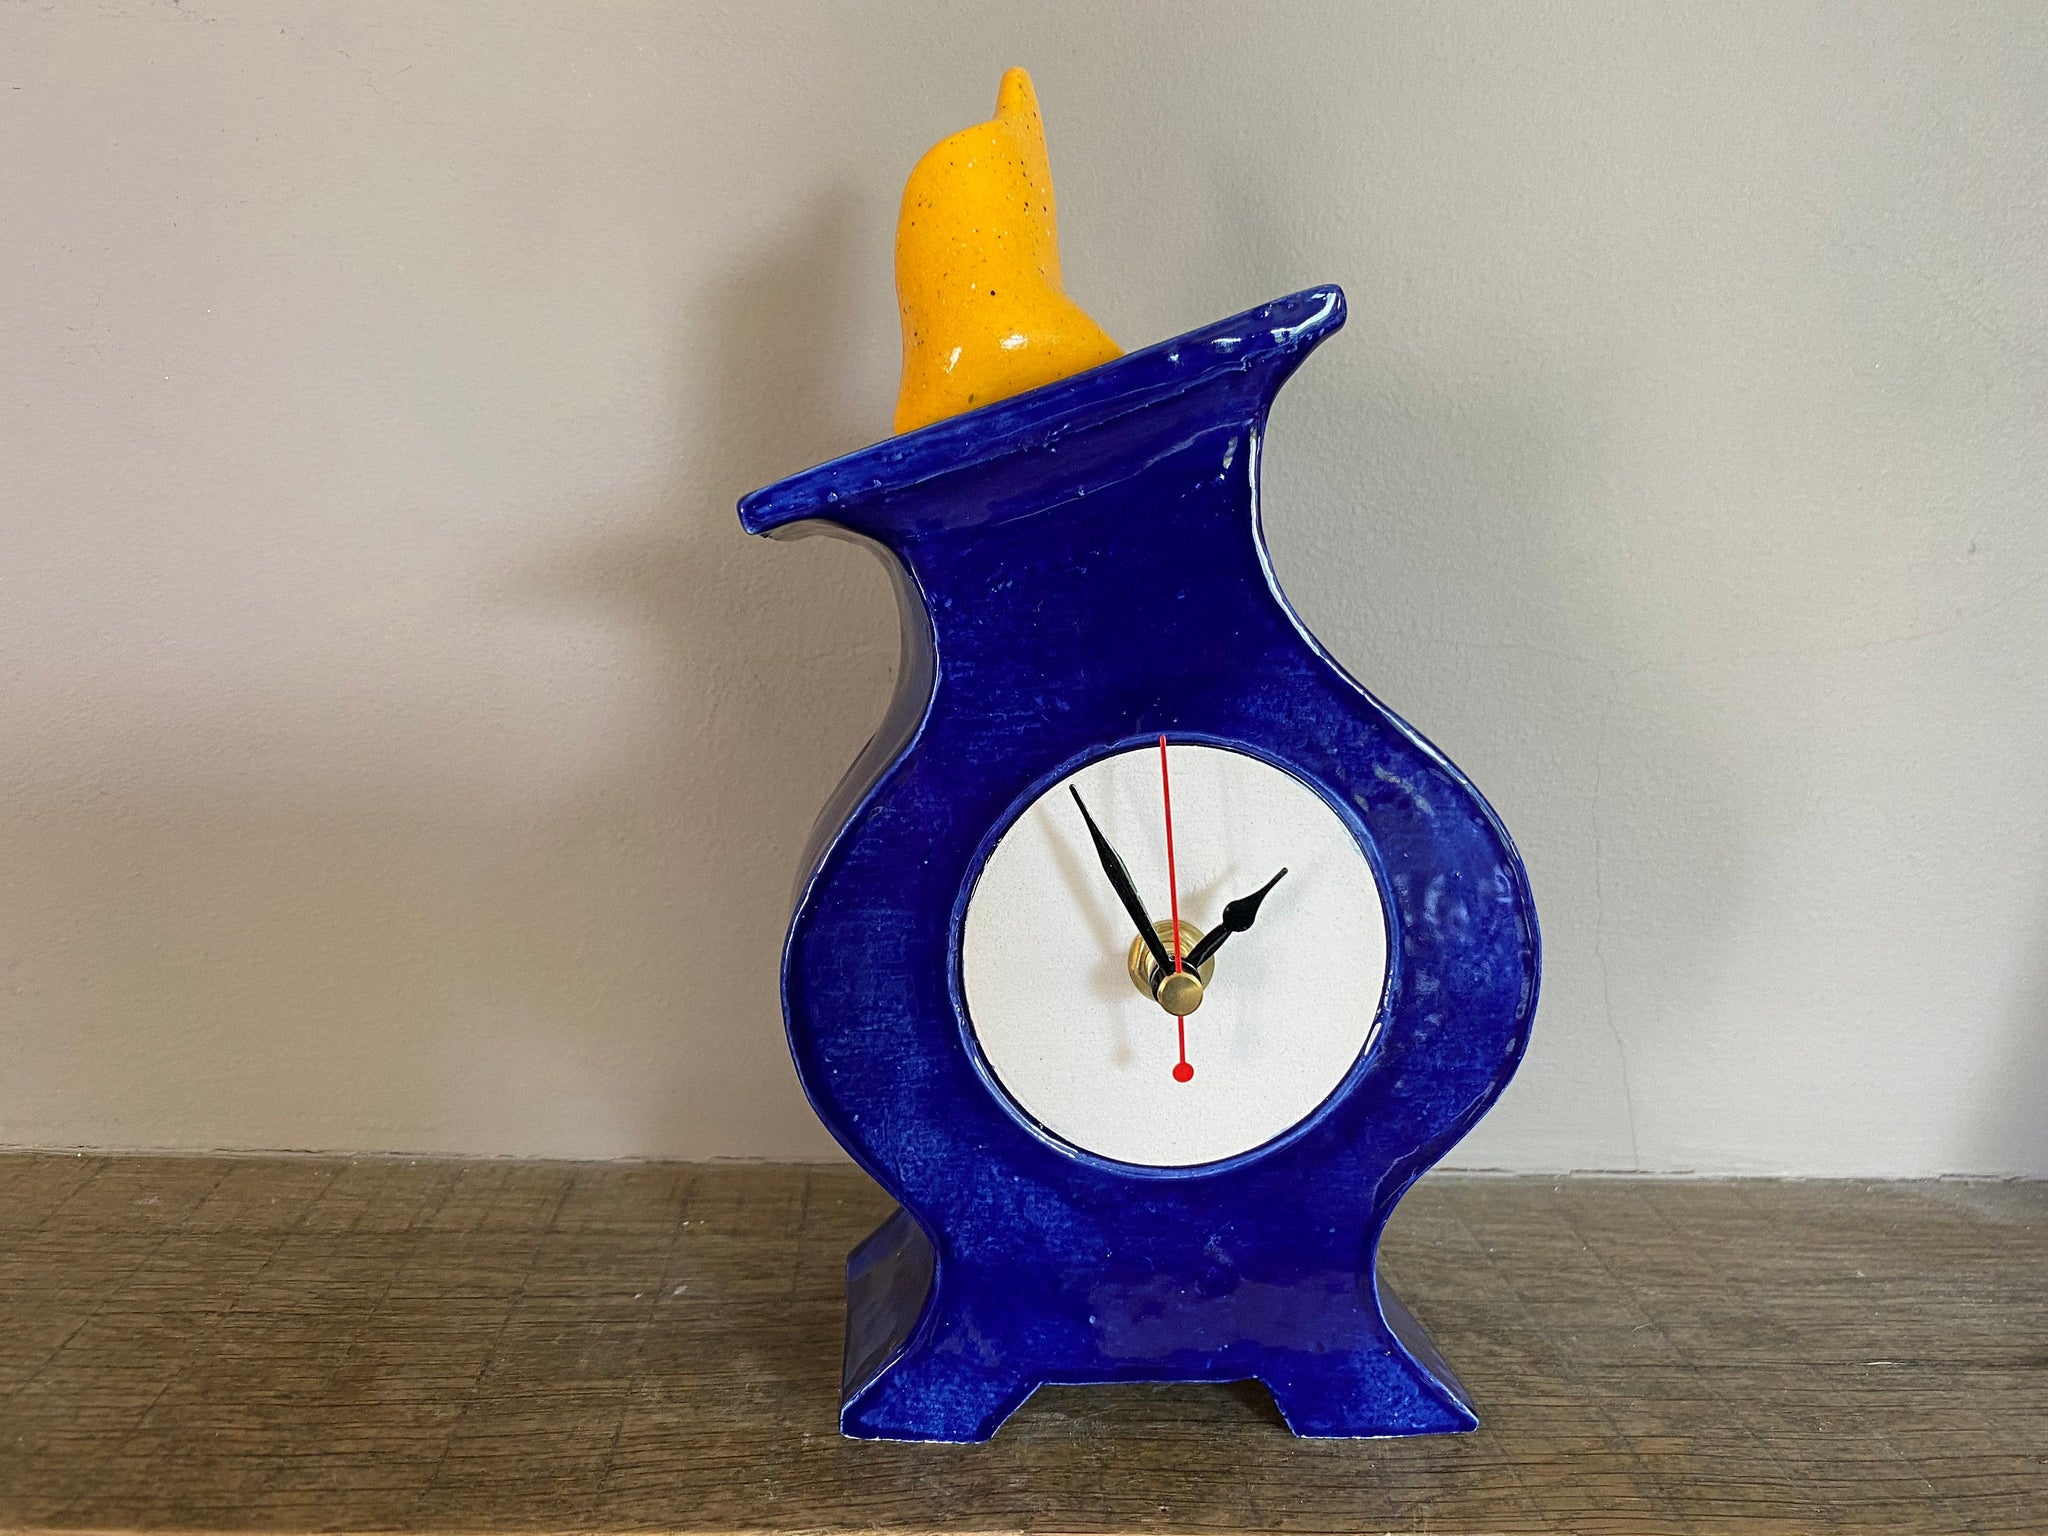 Shelf Clock, Quirky Round Clock for Mantel, Unique Handmade Clock for Desk, Bedside Table - PeterBowenArt